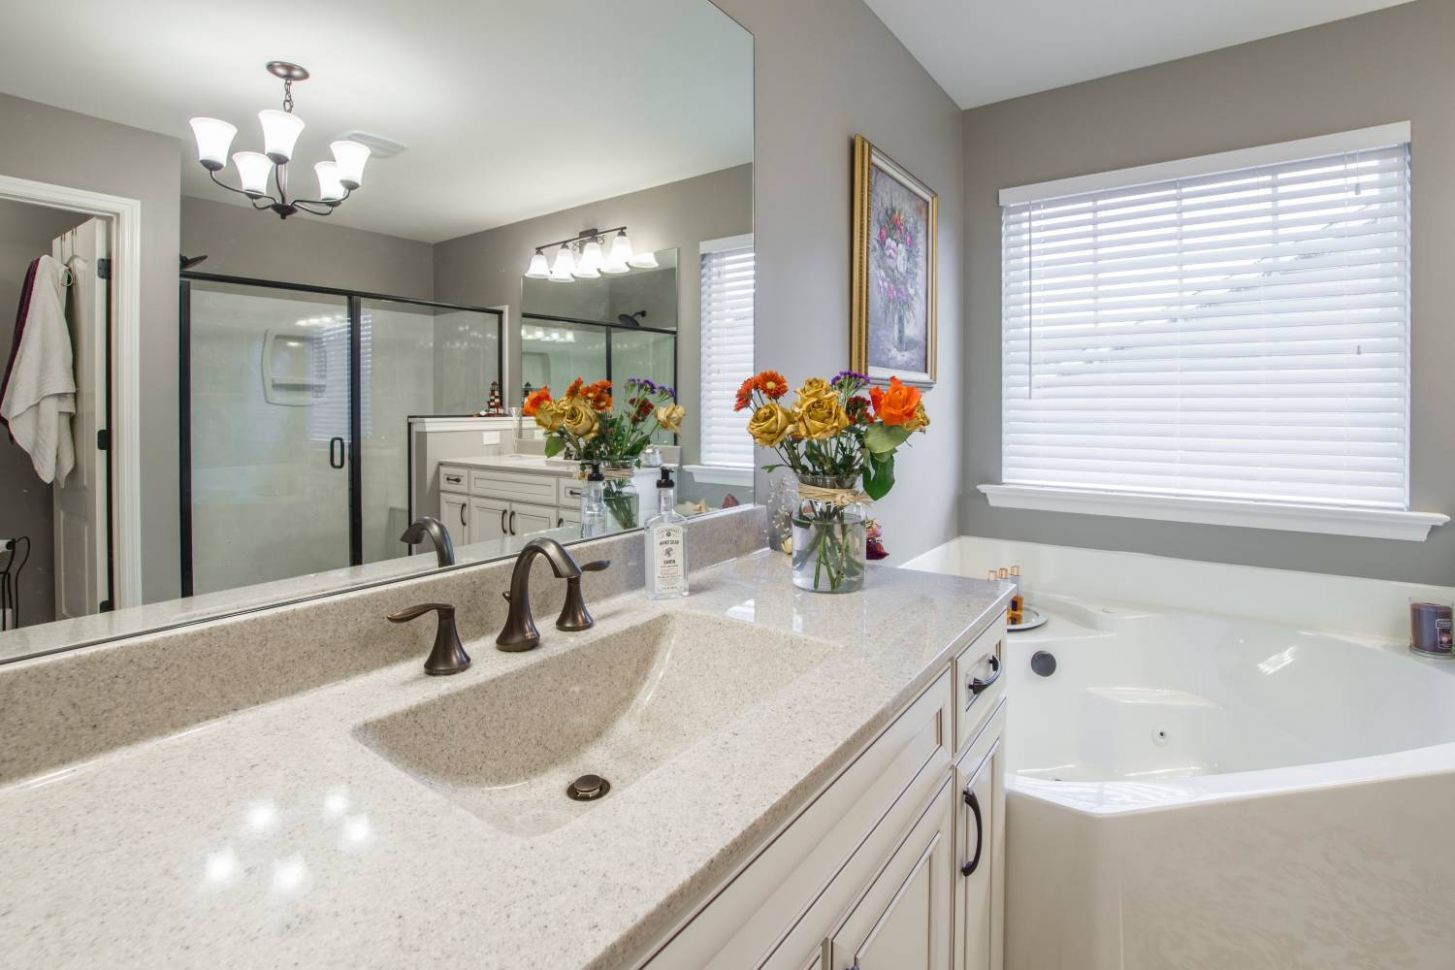 10 Bathroom Remodel Ideas to Look Out for in 10 | KBR Kitchen & Bath - bathroom ideas for 2020